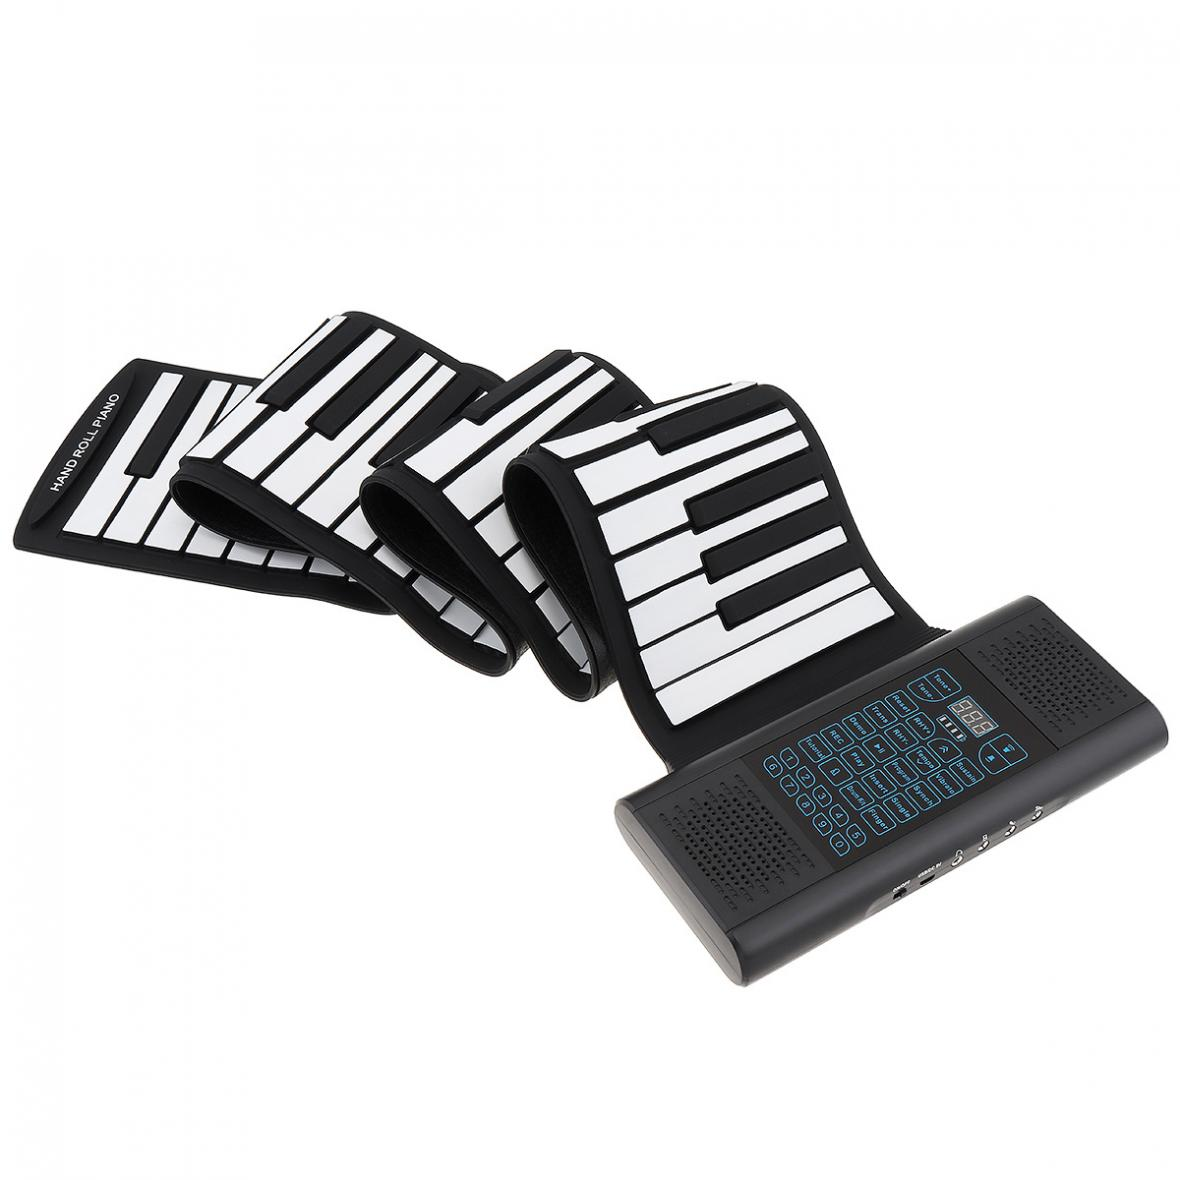 88 Keys Roll Up Electronic Piano  Rechargeable Silicone Flexible Keyboard Organ Built-in 2 Speakers + MIDI Bluetooth-compatible enlarge